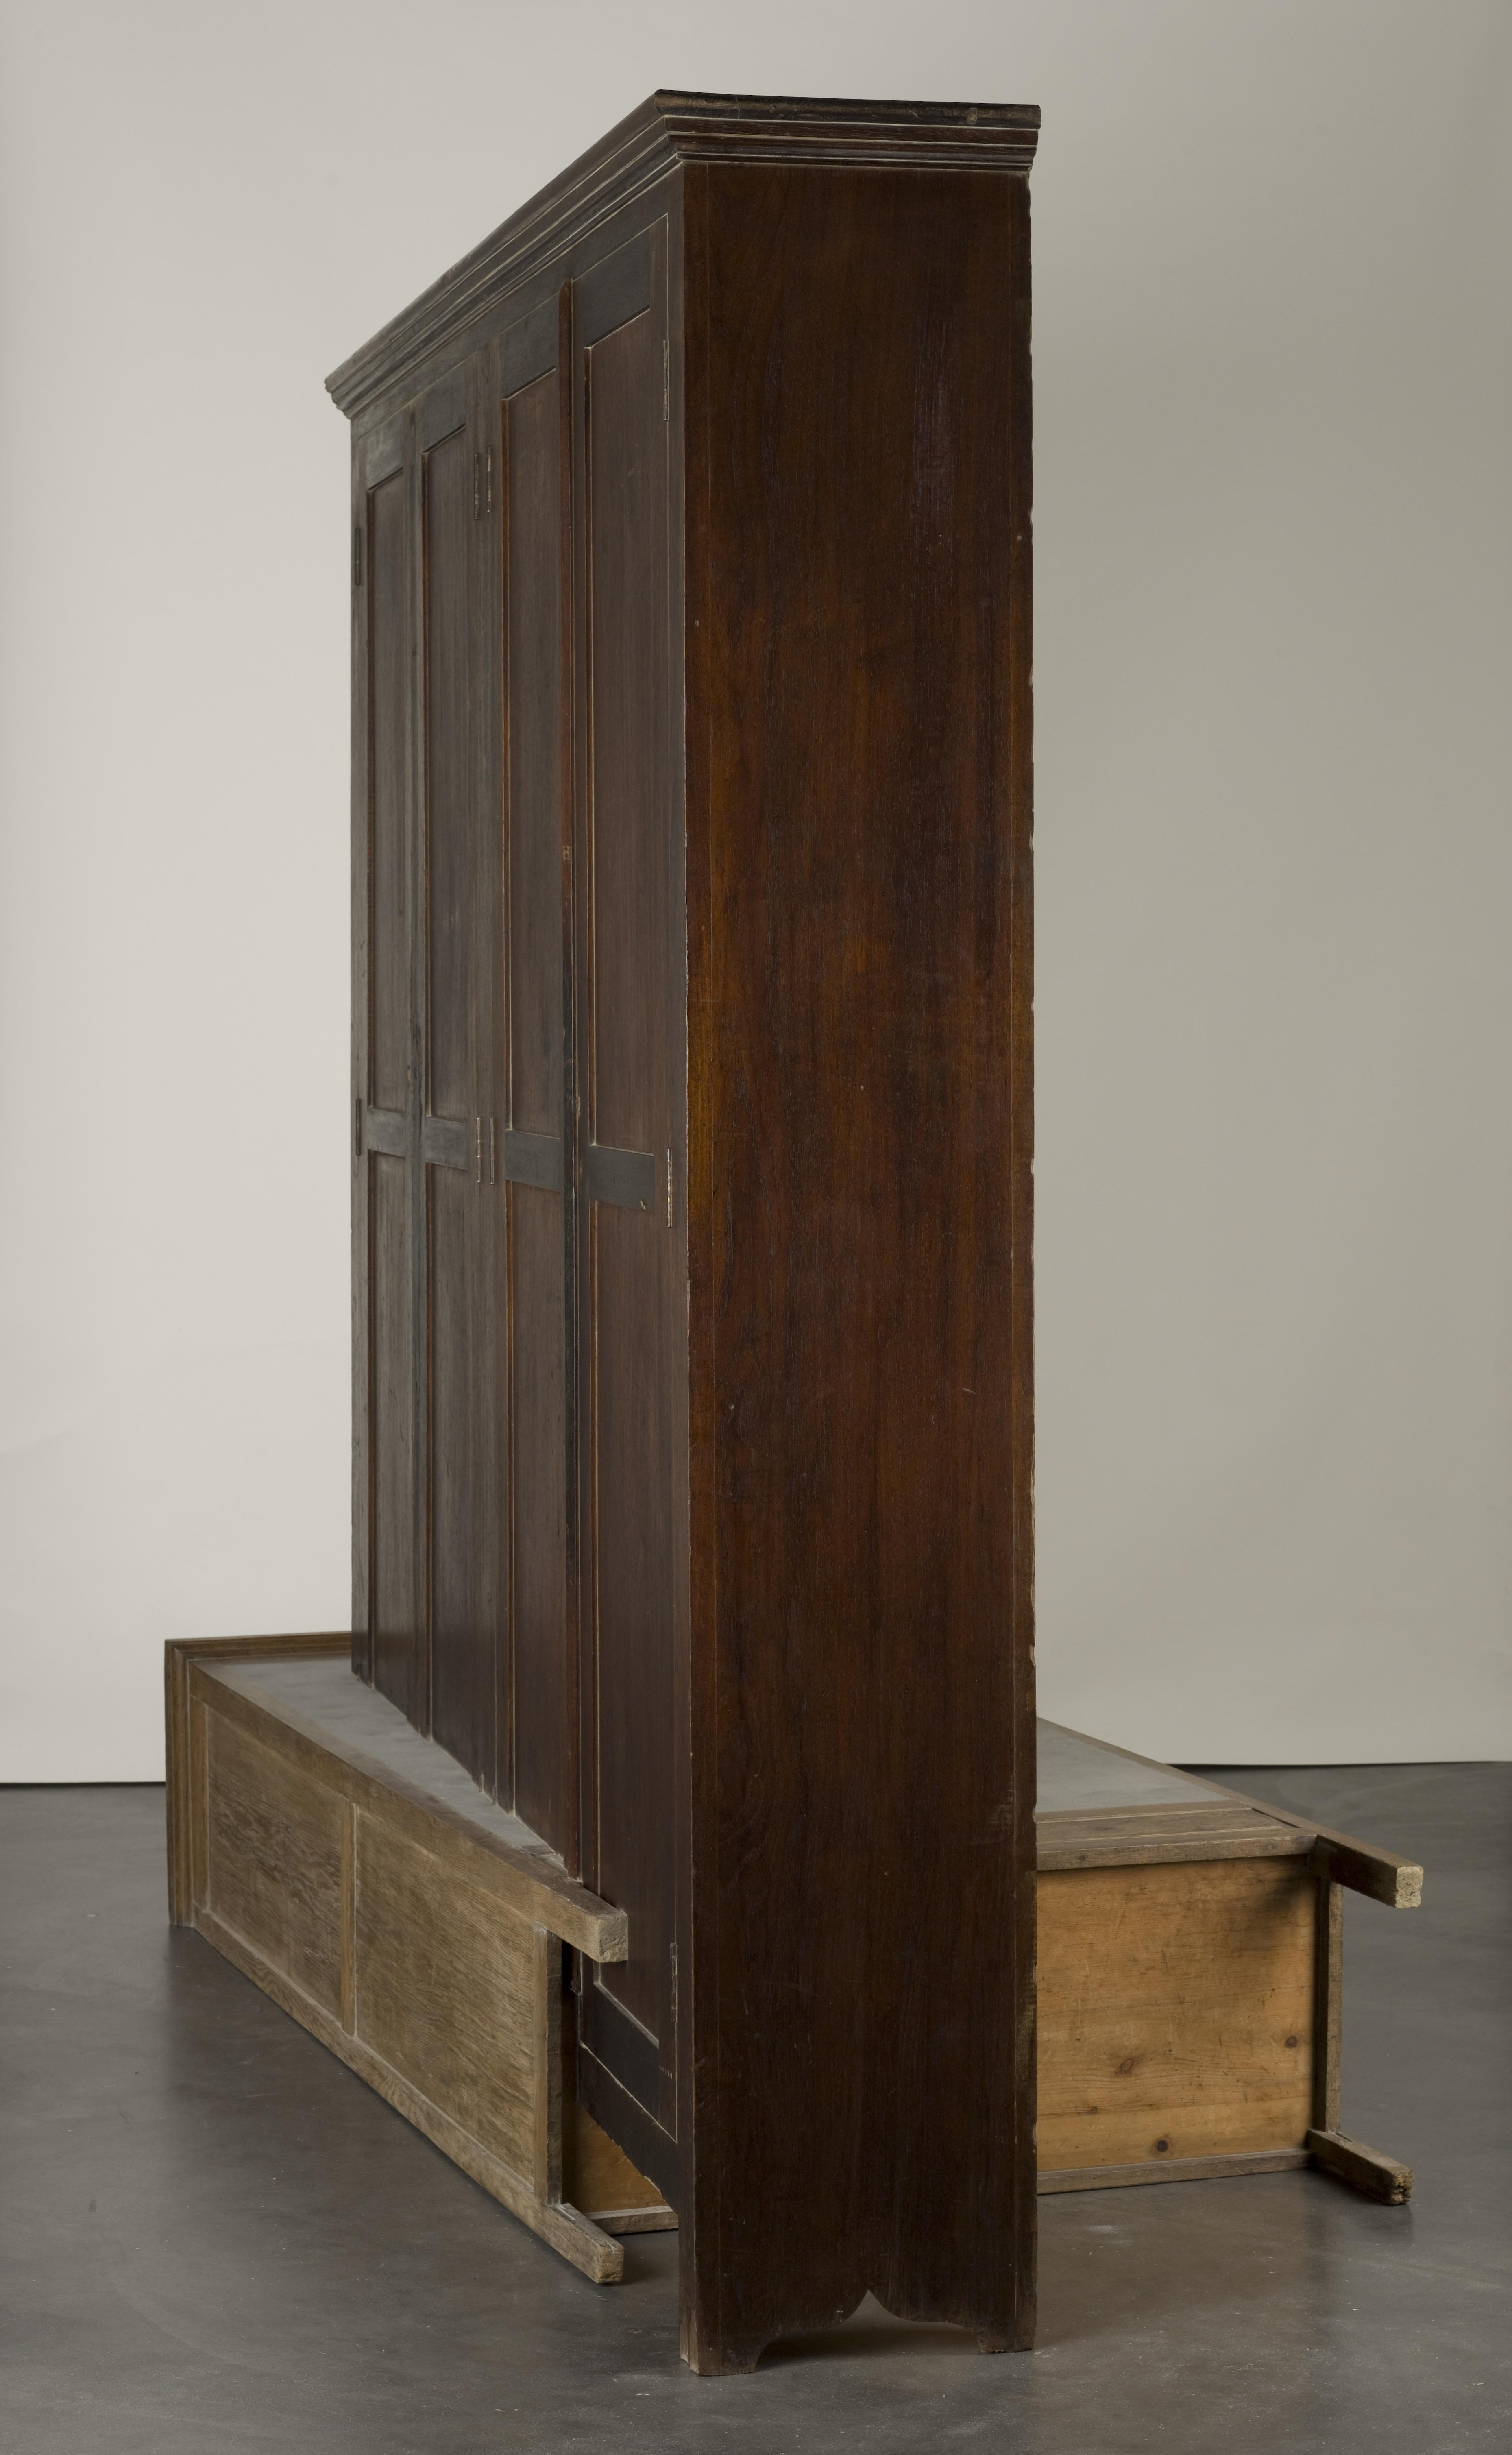 A tall wooden dresser stands upright, lodged in the back of another wooden armoire filled with cement that lies flat on the ground.